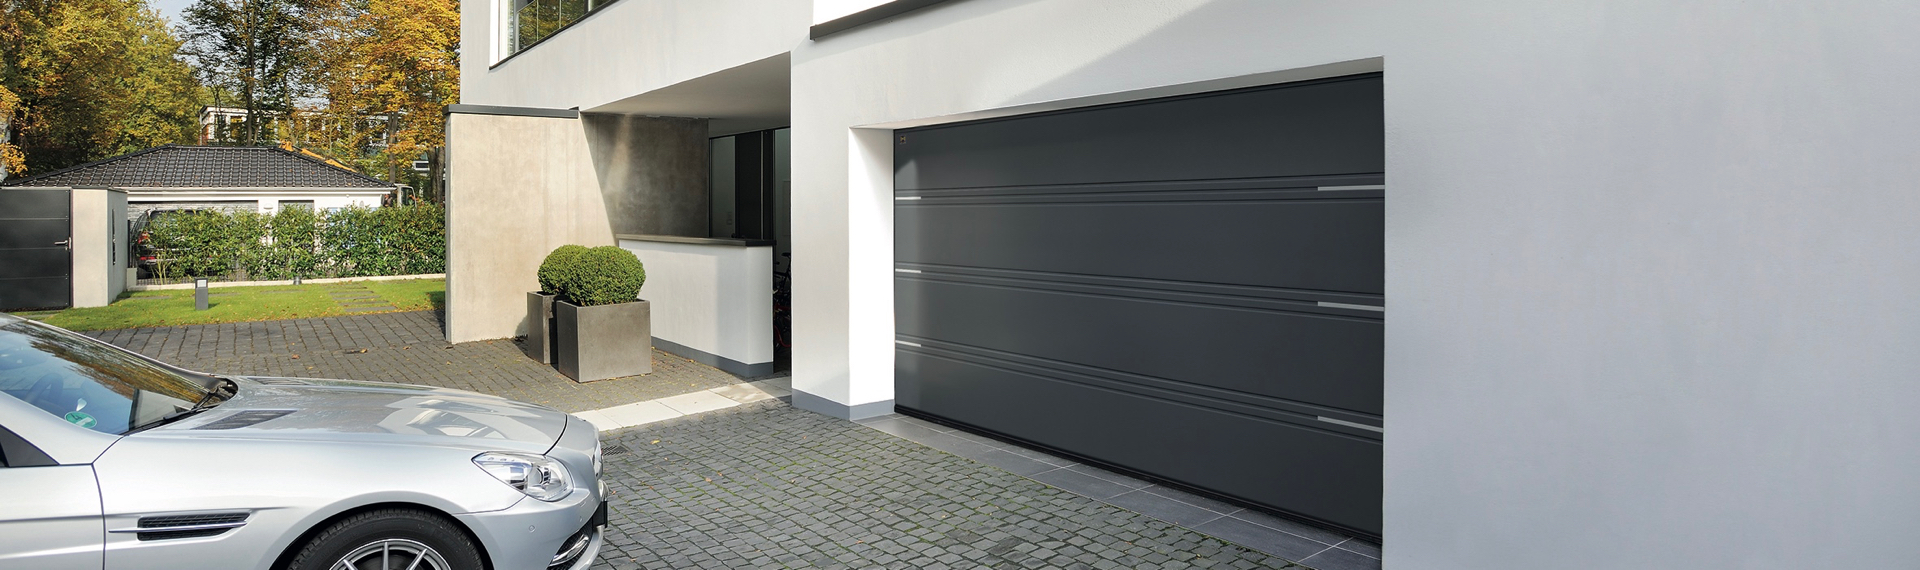 vancouver door architecture collection garage nj aluminum stott with ny clopay avante doors southern